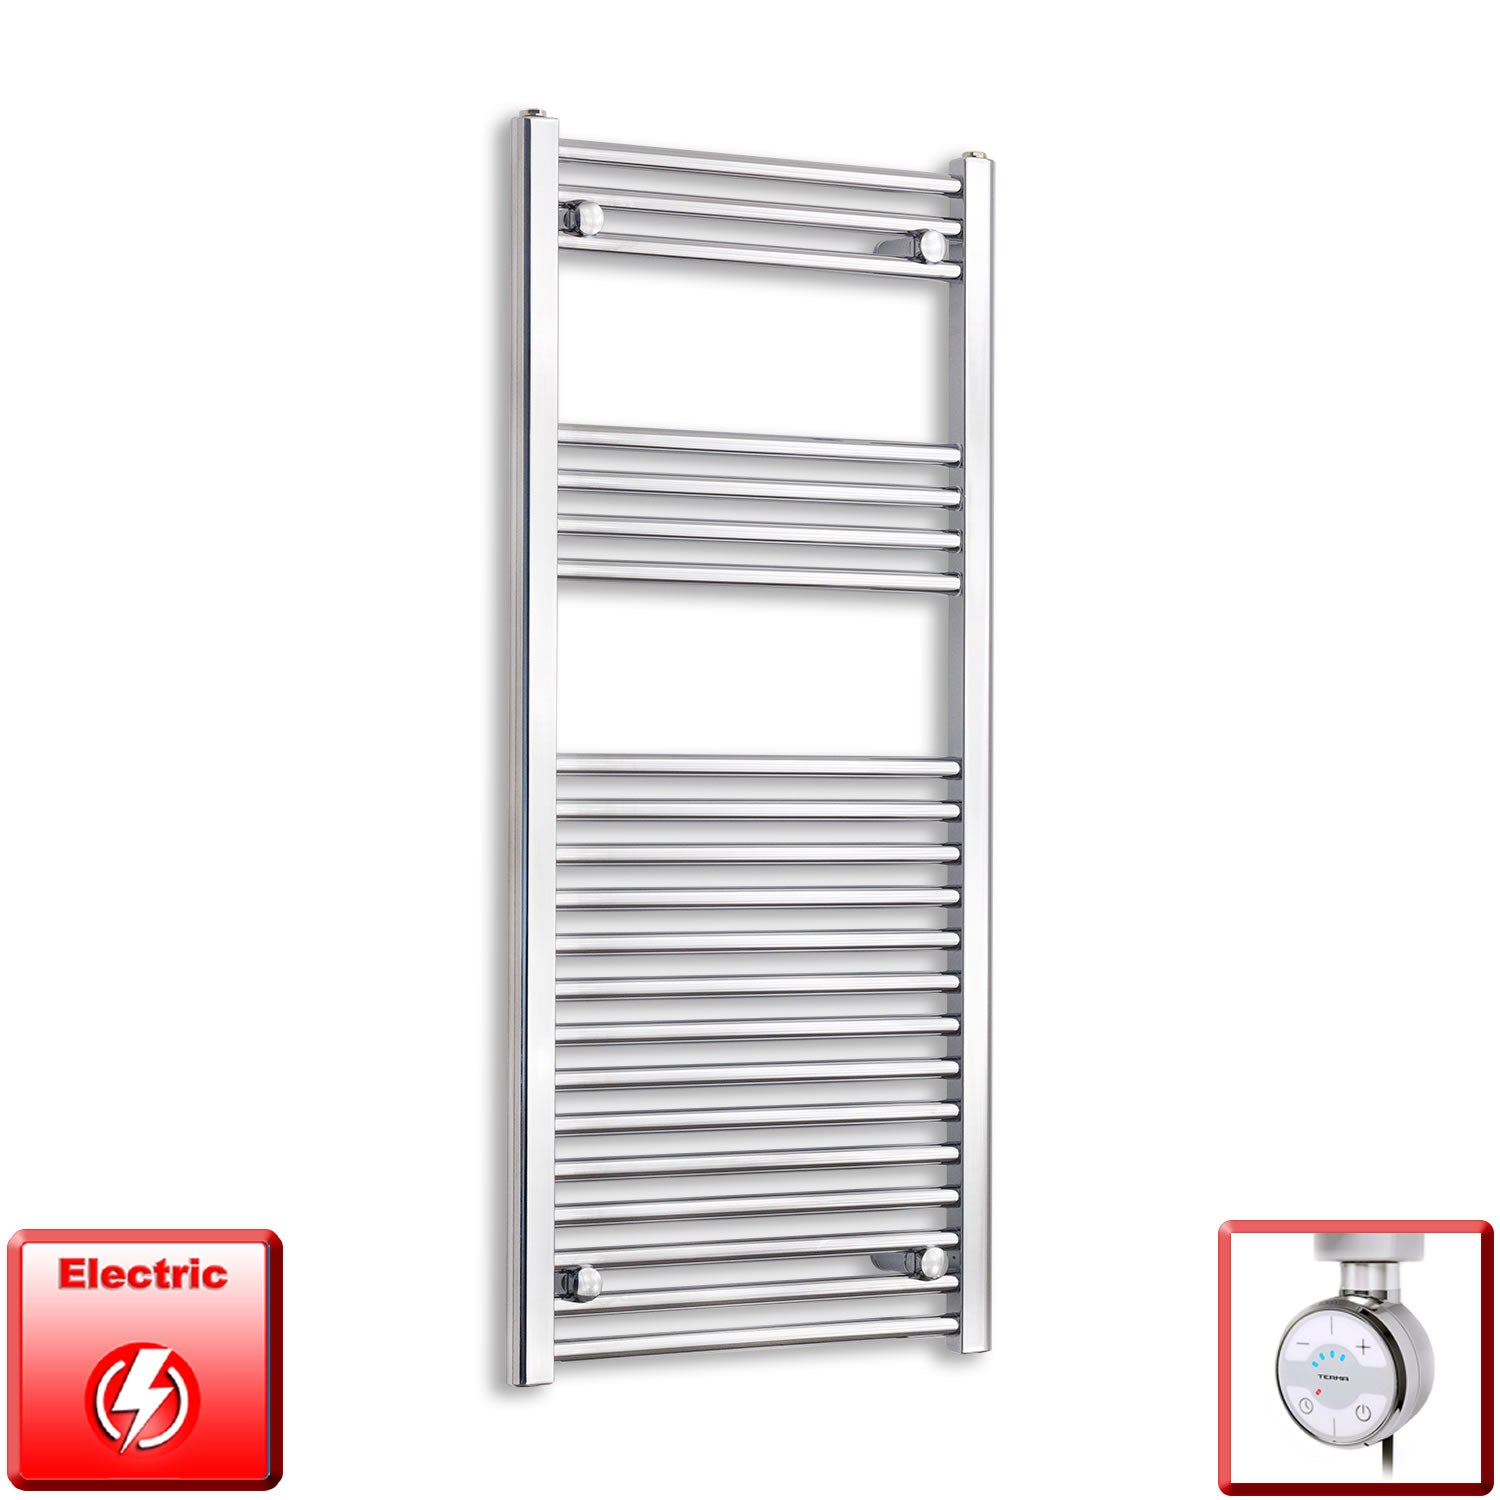 600mm Wide 1100mm High Pre-Filled Chrome Electric Towel Rail Radiator With Thermostatic MOA Element